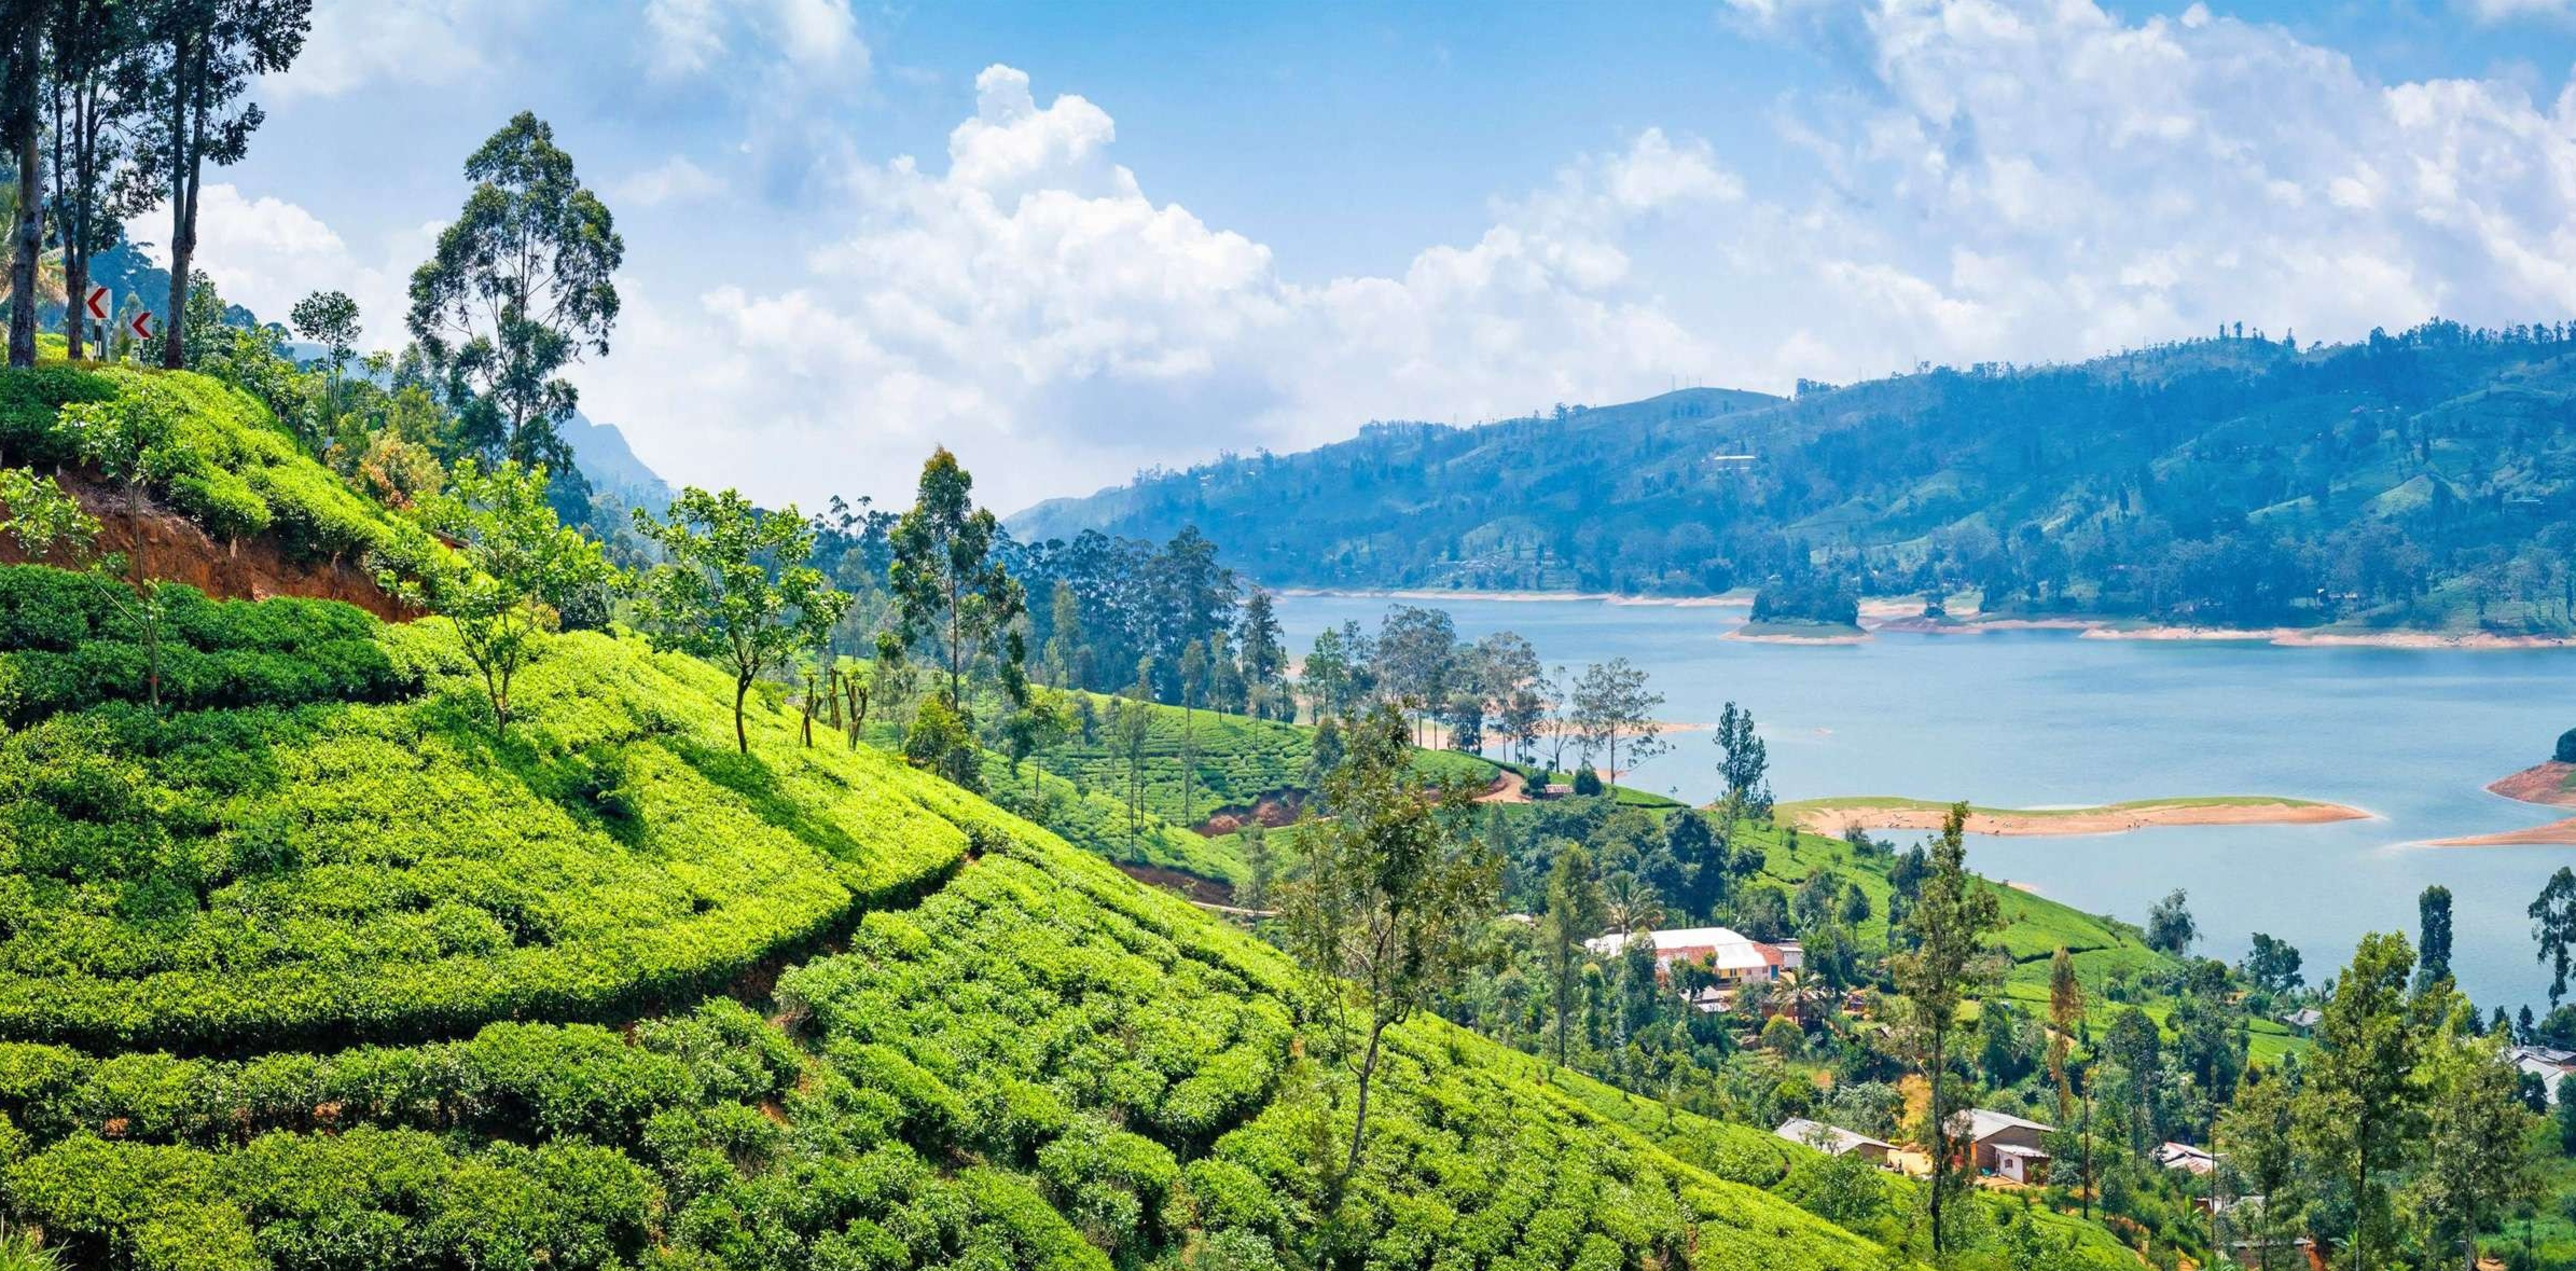 Ramayana Tour in Sri Lanka for 7 Days Package